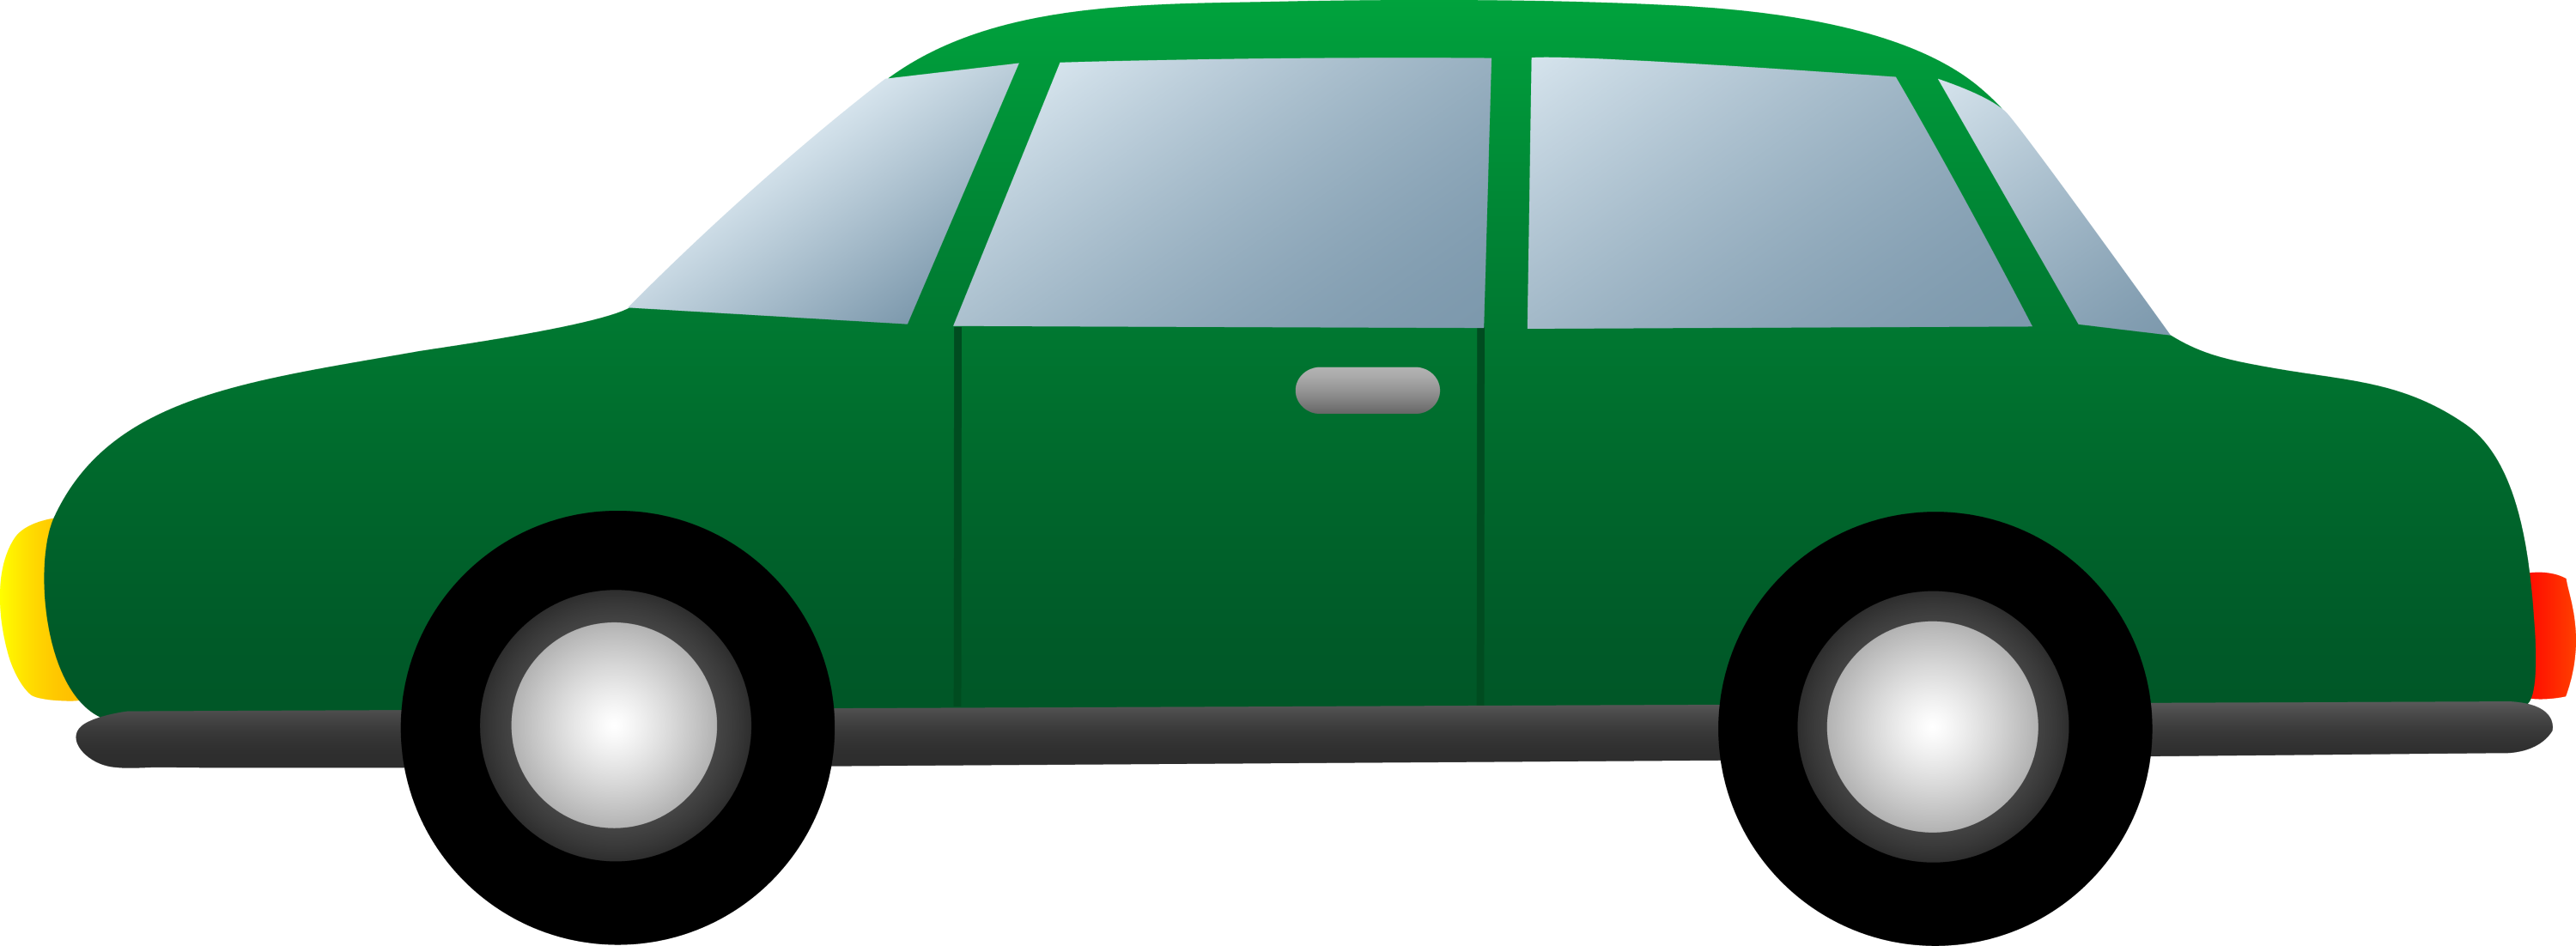 Car simple. Green free clip art